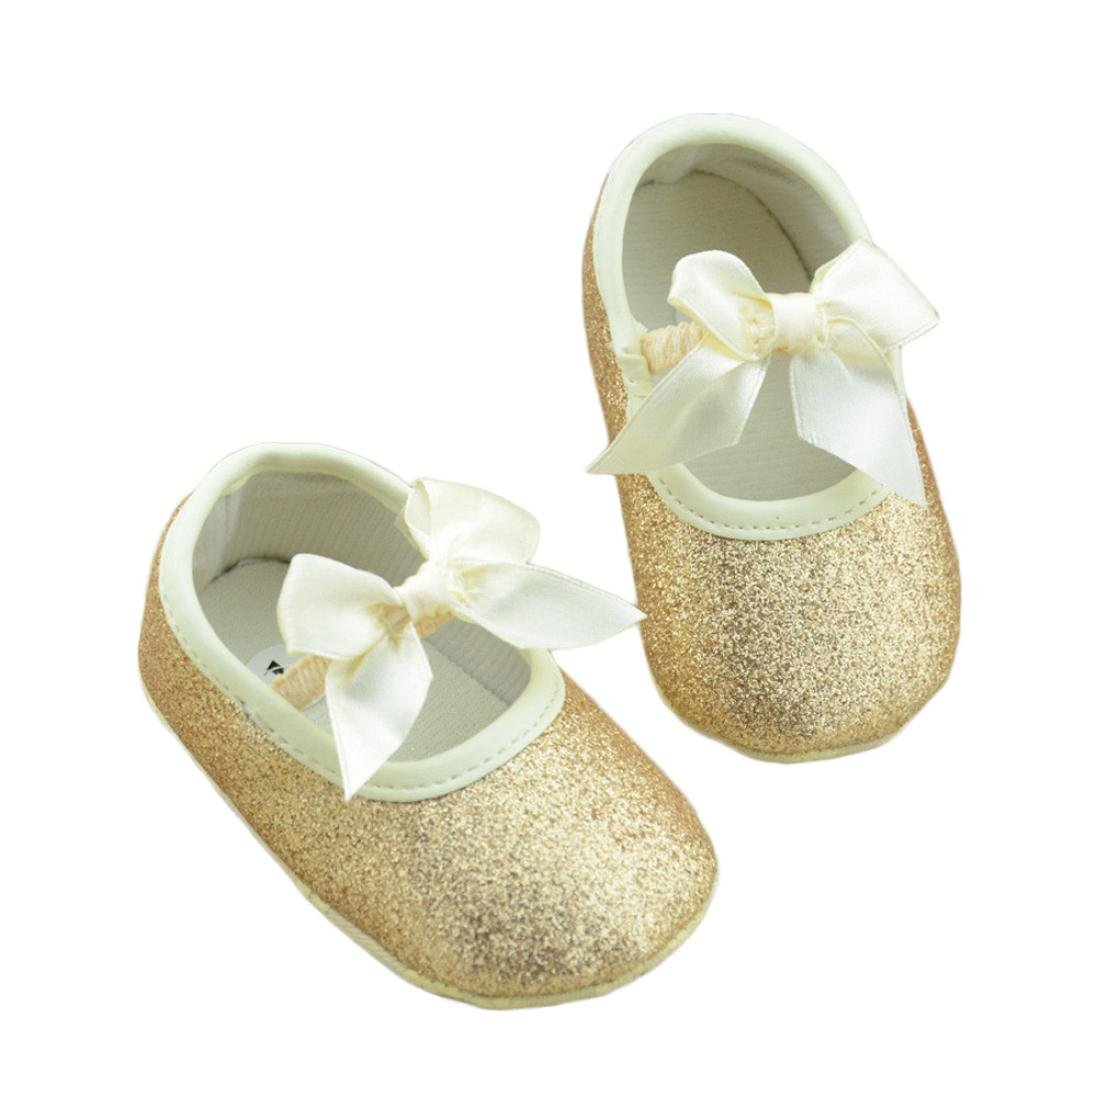 GOTD Glitter Baby Shoes Sneaker Anti-slip Soft Sole Toddler Crib Shoes (0~6 Month US 2.5, Gold )